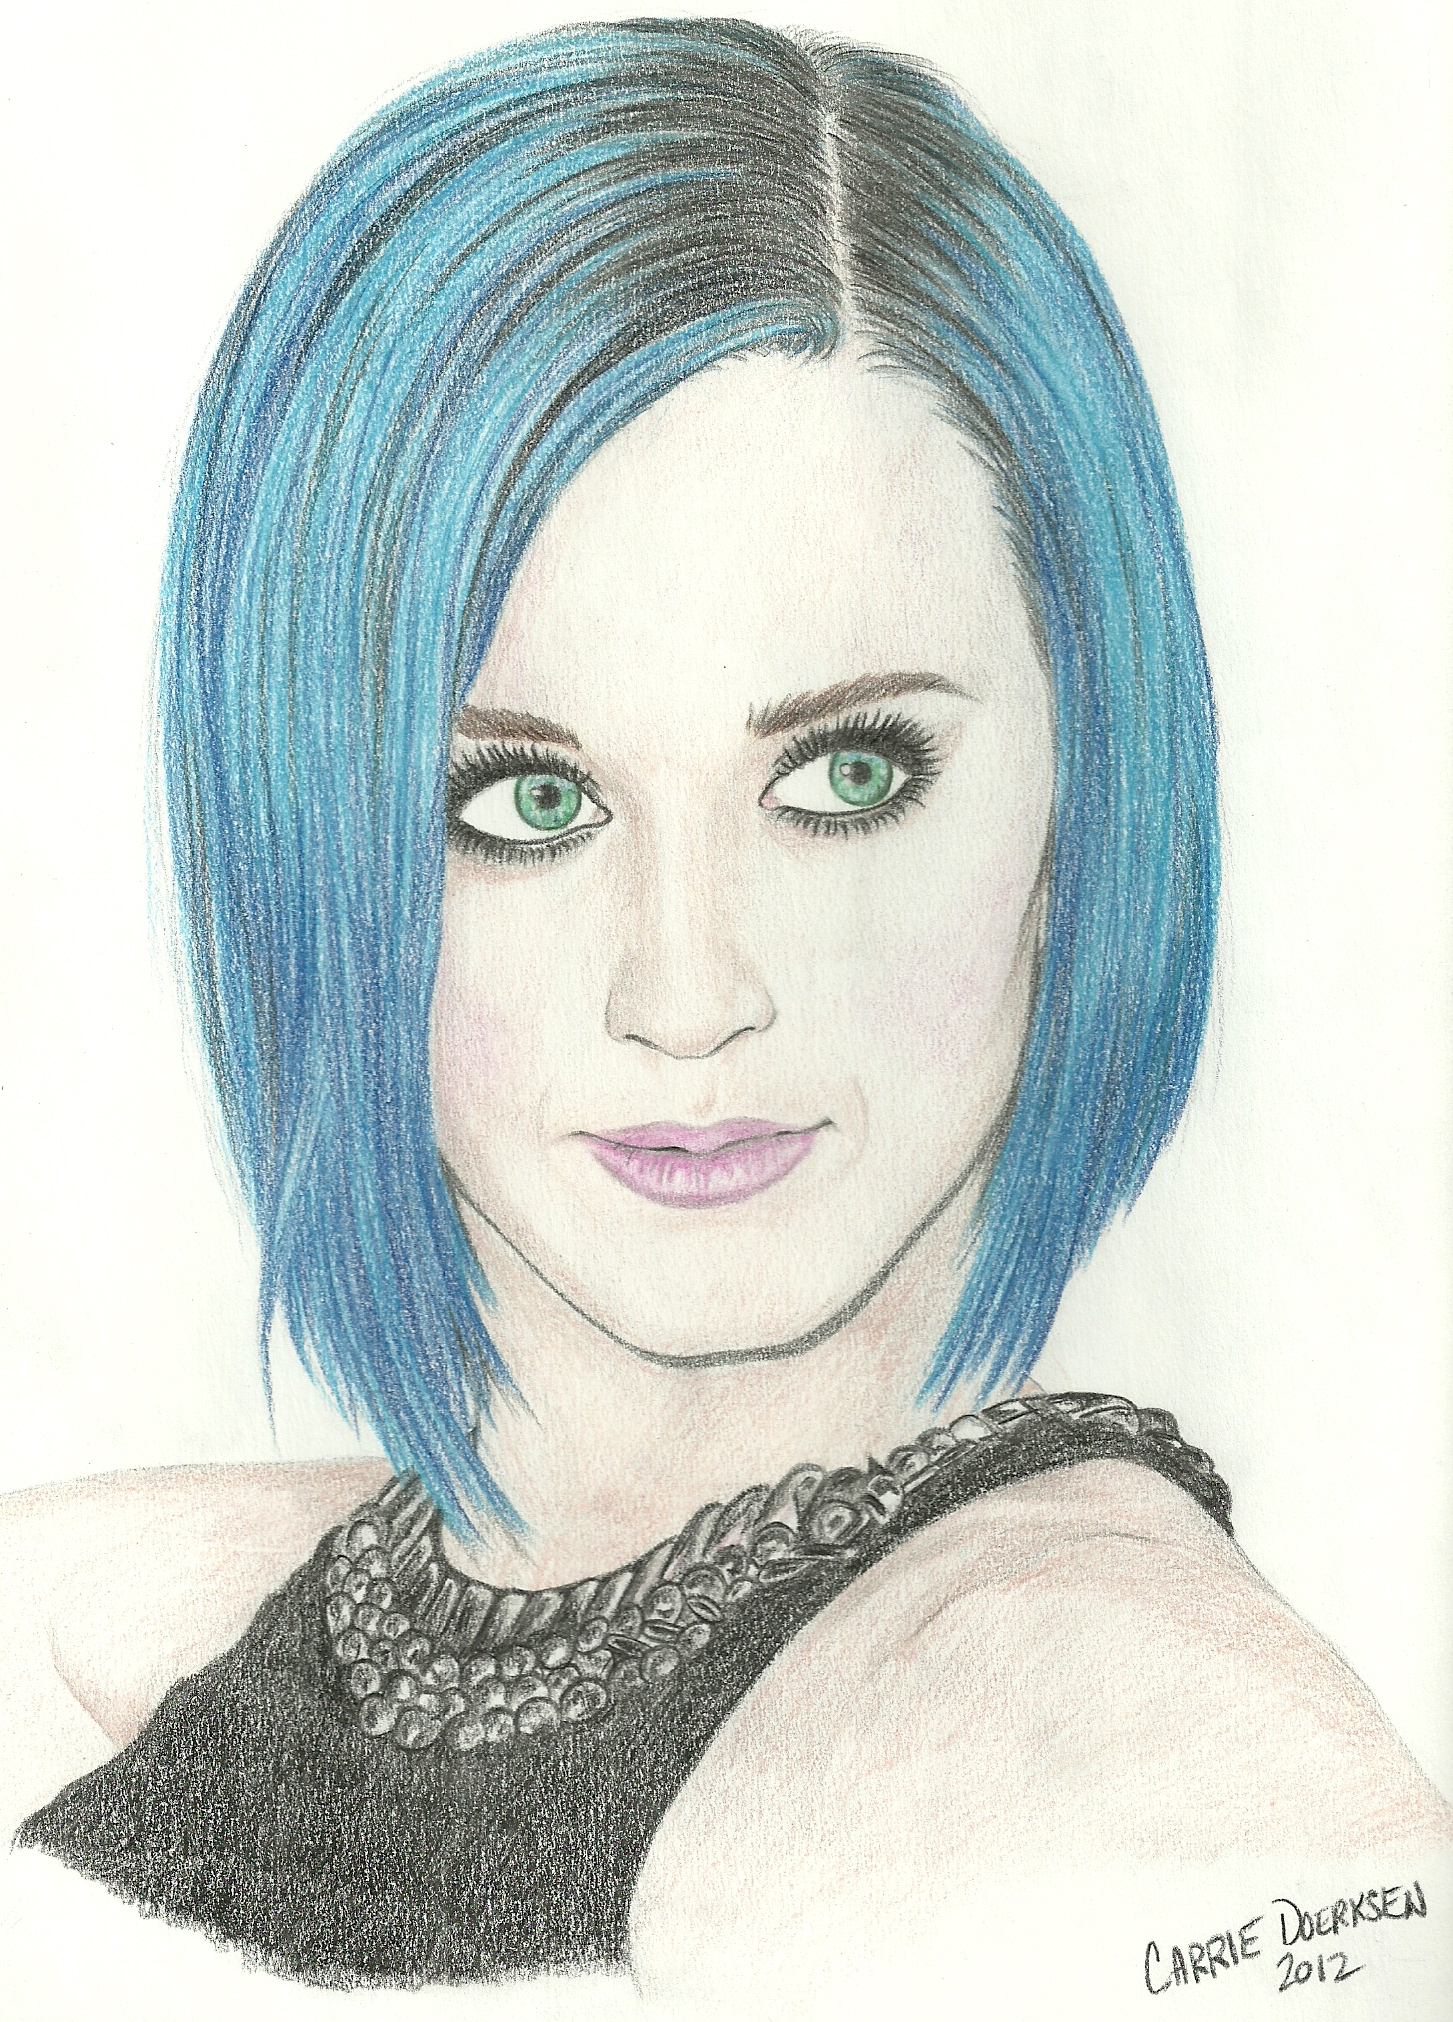 Drawn celebrity awesome art #6